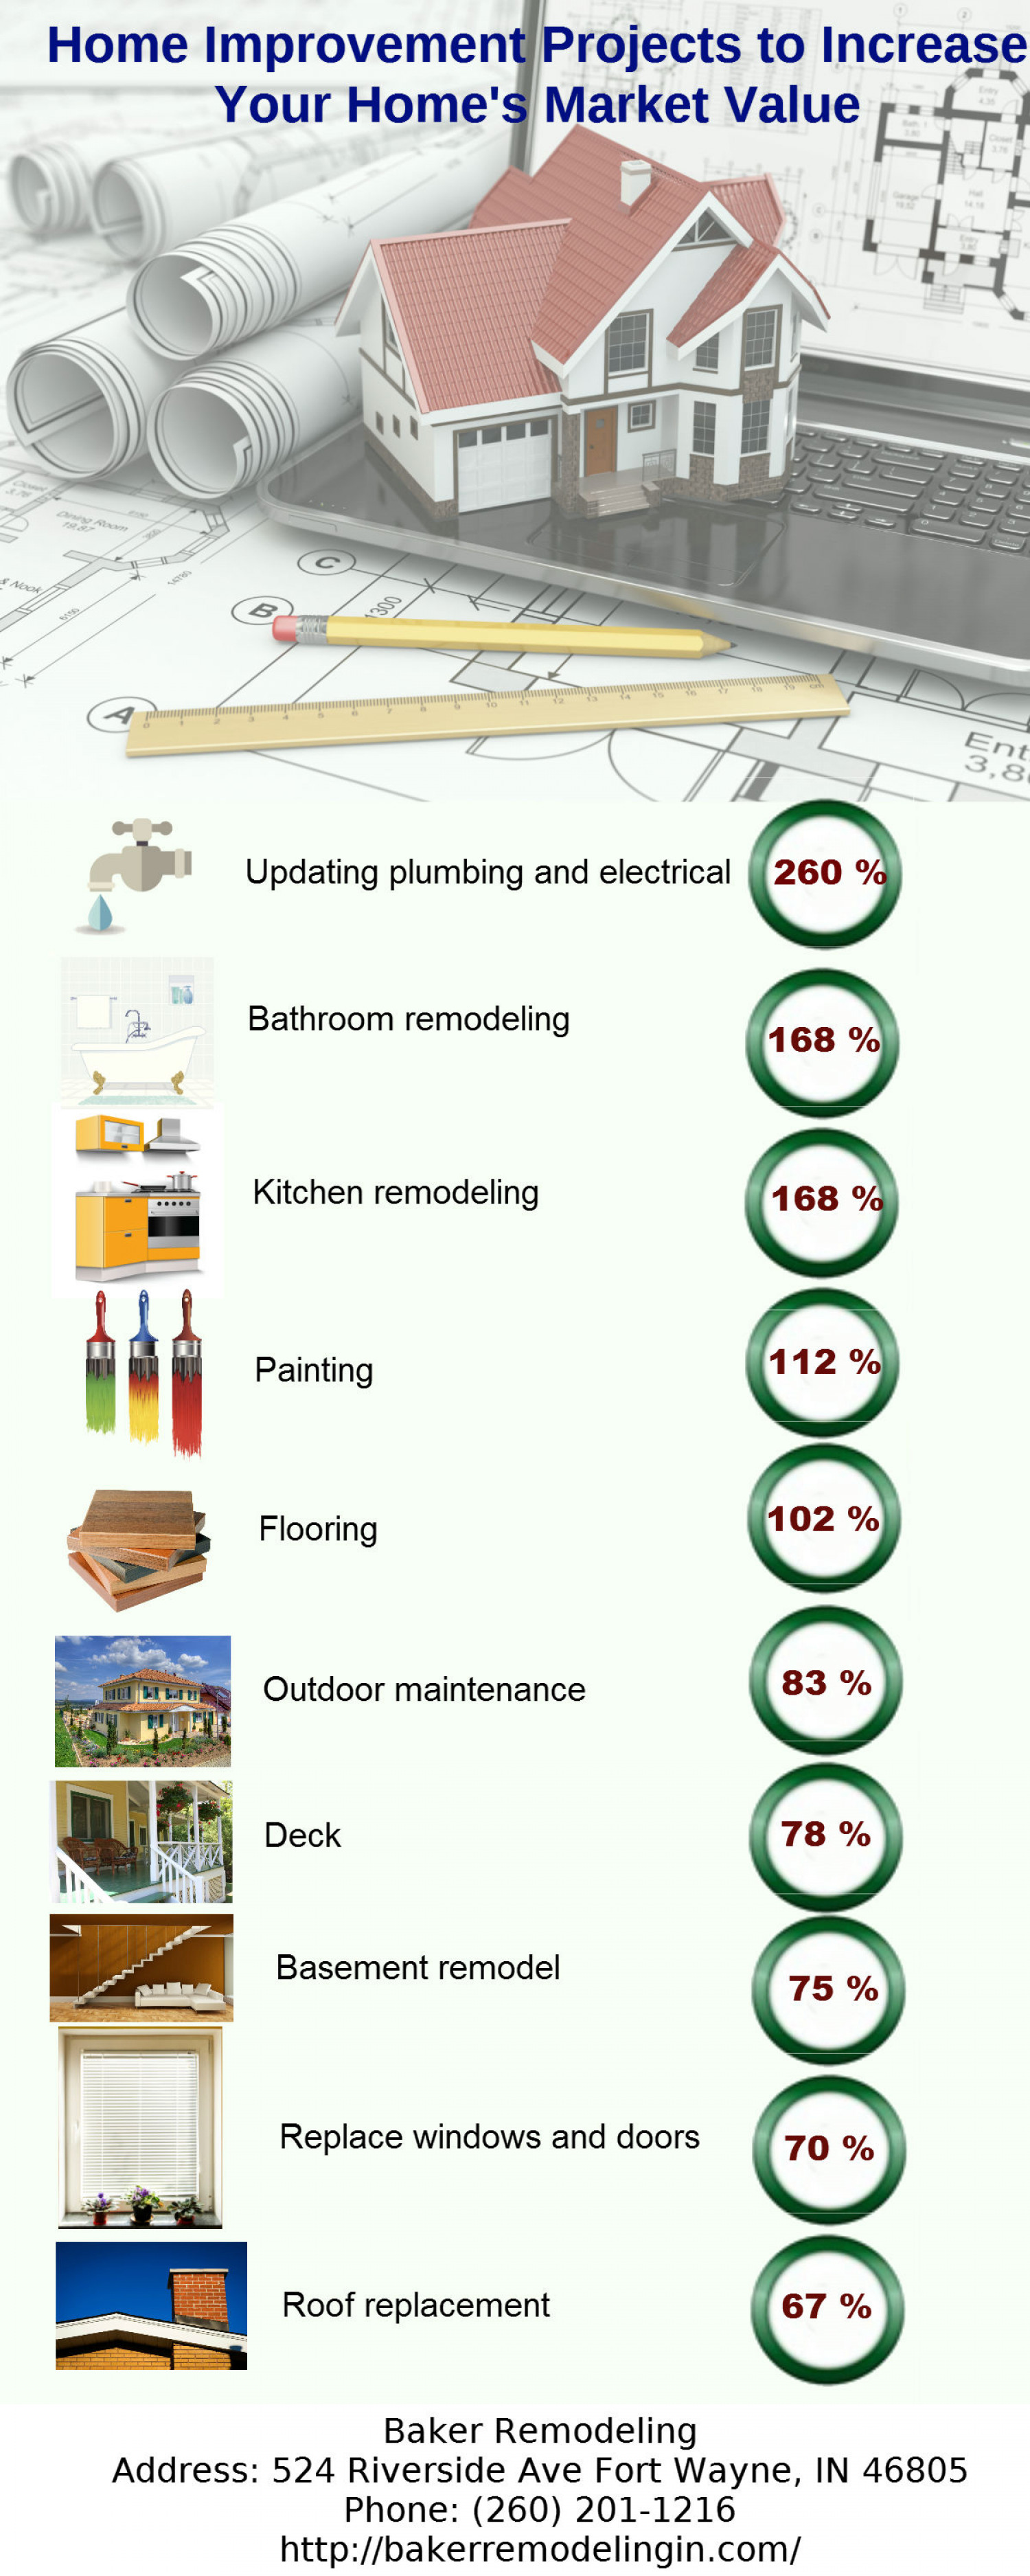 Home improvement projects to increase your home 39 s market for Home improvements that increase value